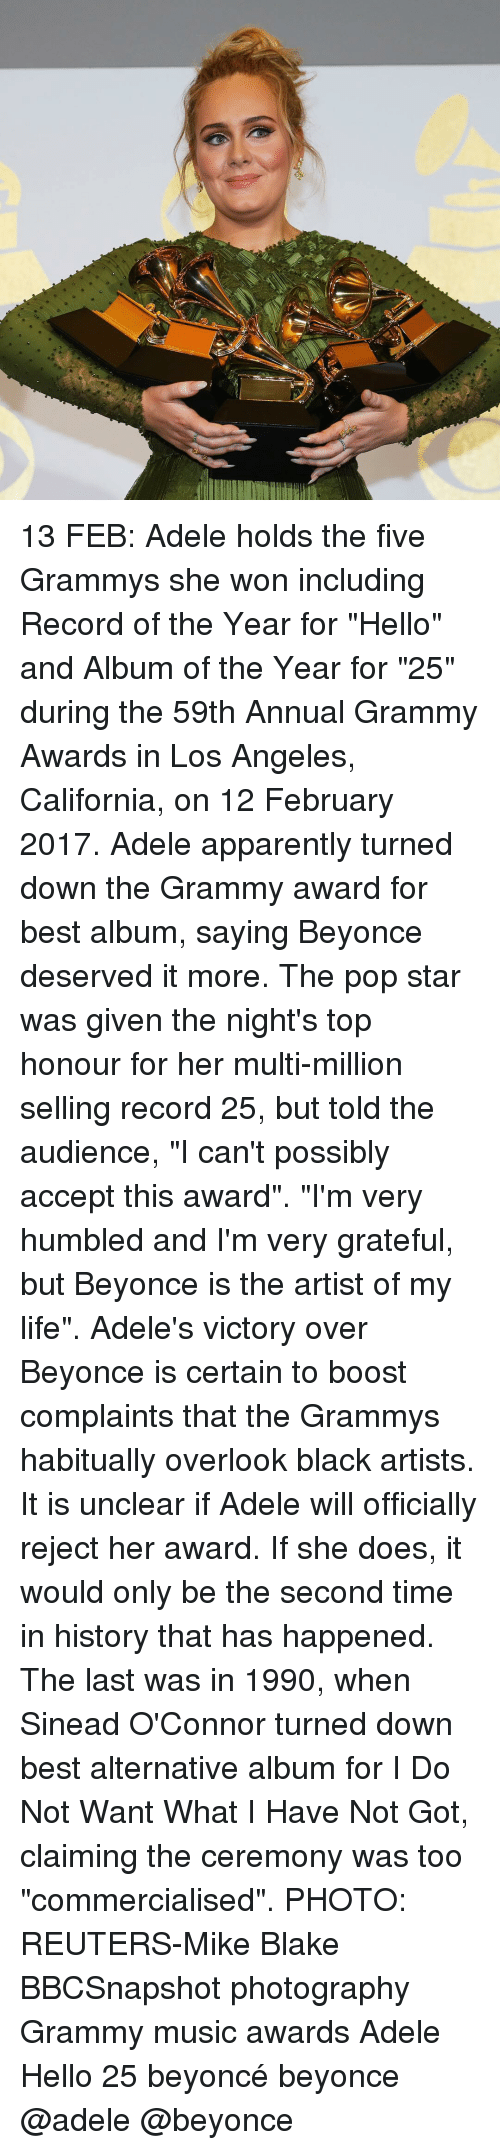 "humbleness: 熬 3, 13 FEB: Adele holds the five Grammys she won including Record of the Year for ""Hello"" and Album of the Year for ""25"" during the 59th Annual Grammy Awards in Los Angeles, California, on 12 February 2017. Adele apparently turned down the Grammy award for best album, saying Beyonce deserved it more. The pop star was given the night's top honour for her multi-million selling record 25, but told the audience, ""I can't possibly accept this award"". ""I'm very humbled and I'm very grateful, but Beyonce is the artist of my life"". Adele's victory over Beyonce is certain to boost complaints that the Grammys habitually overlook black artists. It is unclear if Adele will officially reject her award. If she does, it would only be the second time in history that has happened. The last was in 1990, when Sinead O'Connor turned down best alternative album for I Do Not Want What I Have Not Got, claiming the ceremony was too ""commercialised"". PHOTO: REUTERS-Mike Blake BBCSnapshot photography Grammy music awards Adele Hello 25 beyoncé beyonce @adele @beyonce"